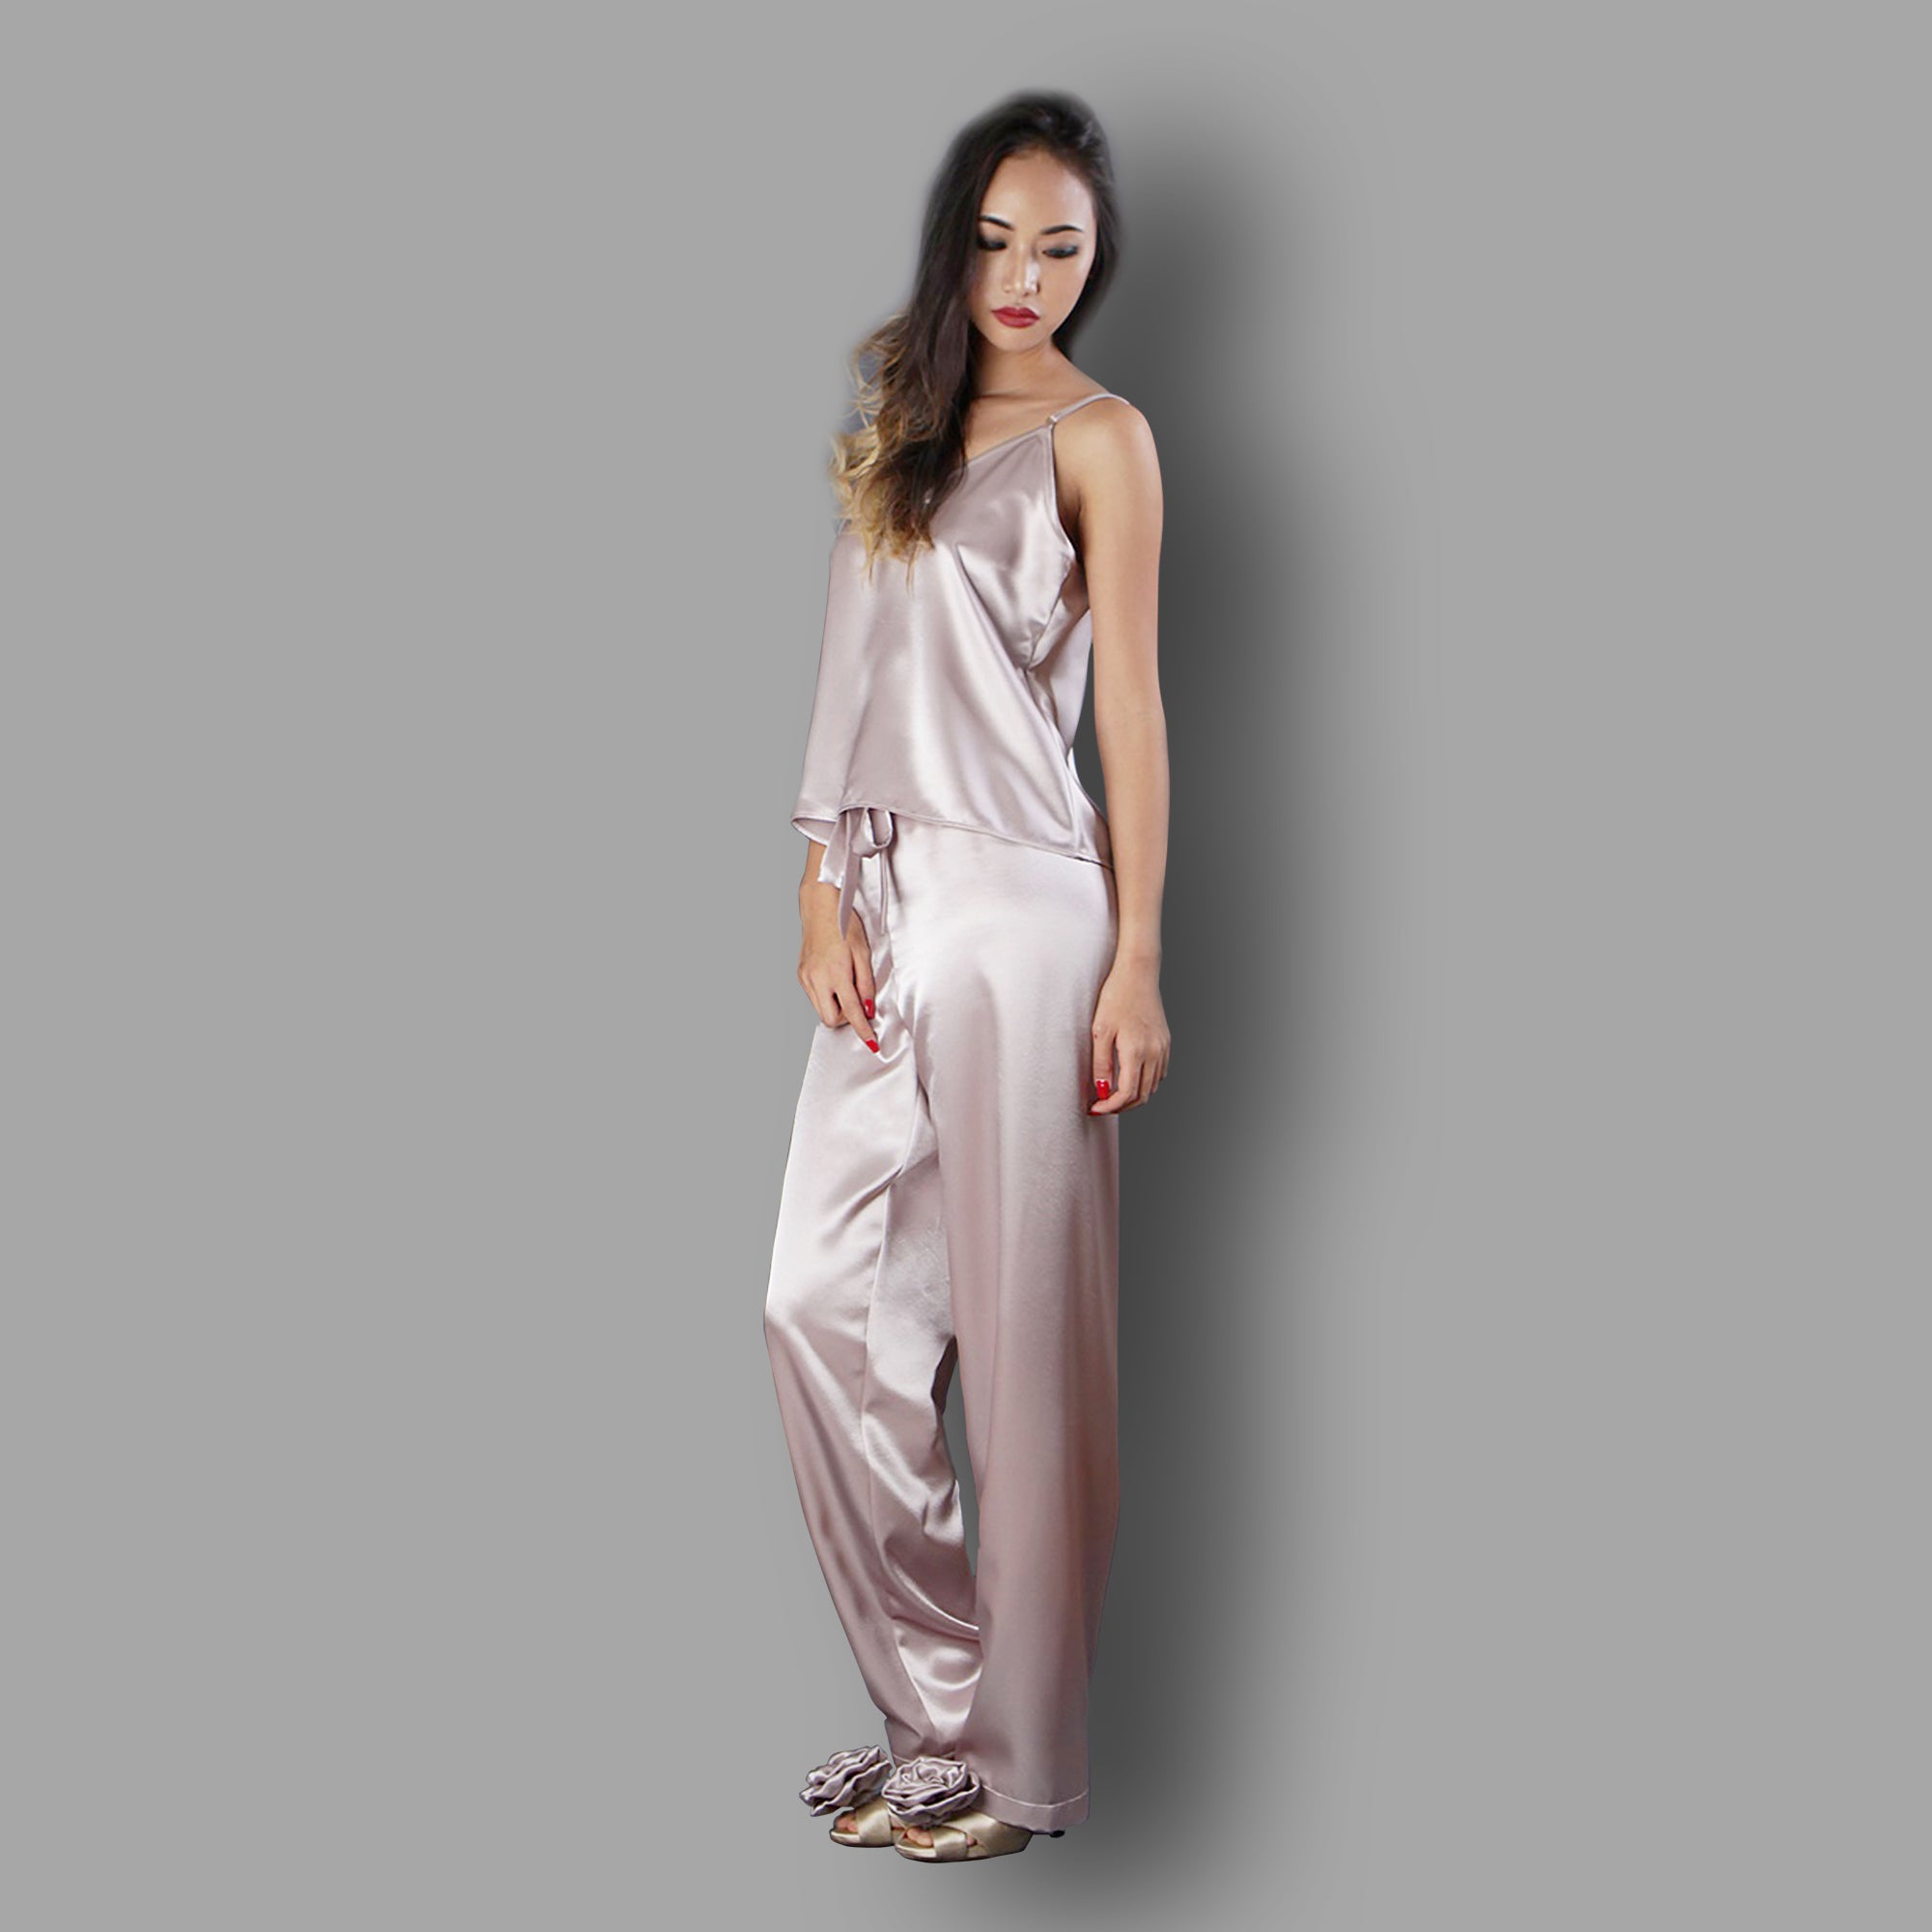 Pajama Set Camisole top Satin nightwear Lounge wear, Sleepwear, Bridal nightwear by Ange Dechu - Ange Déchu